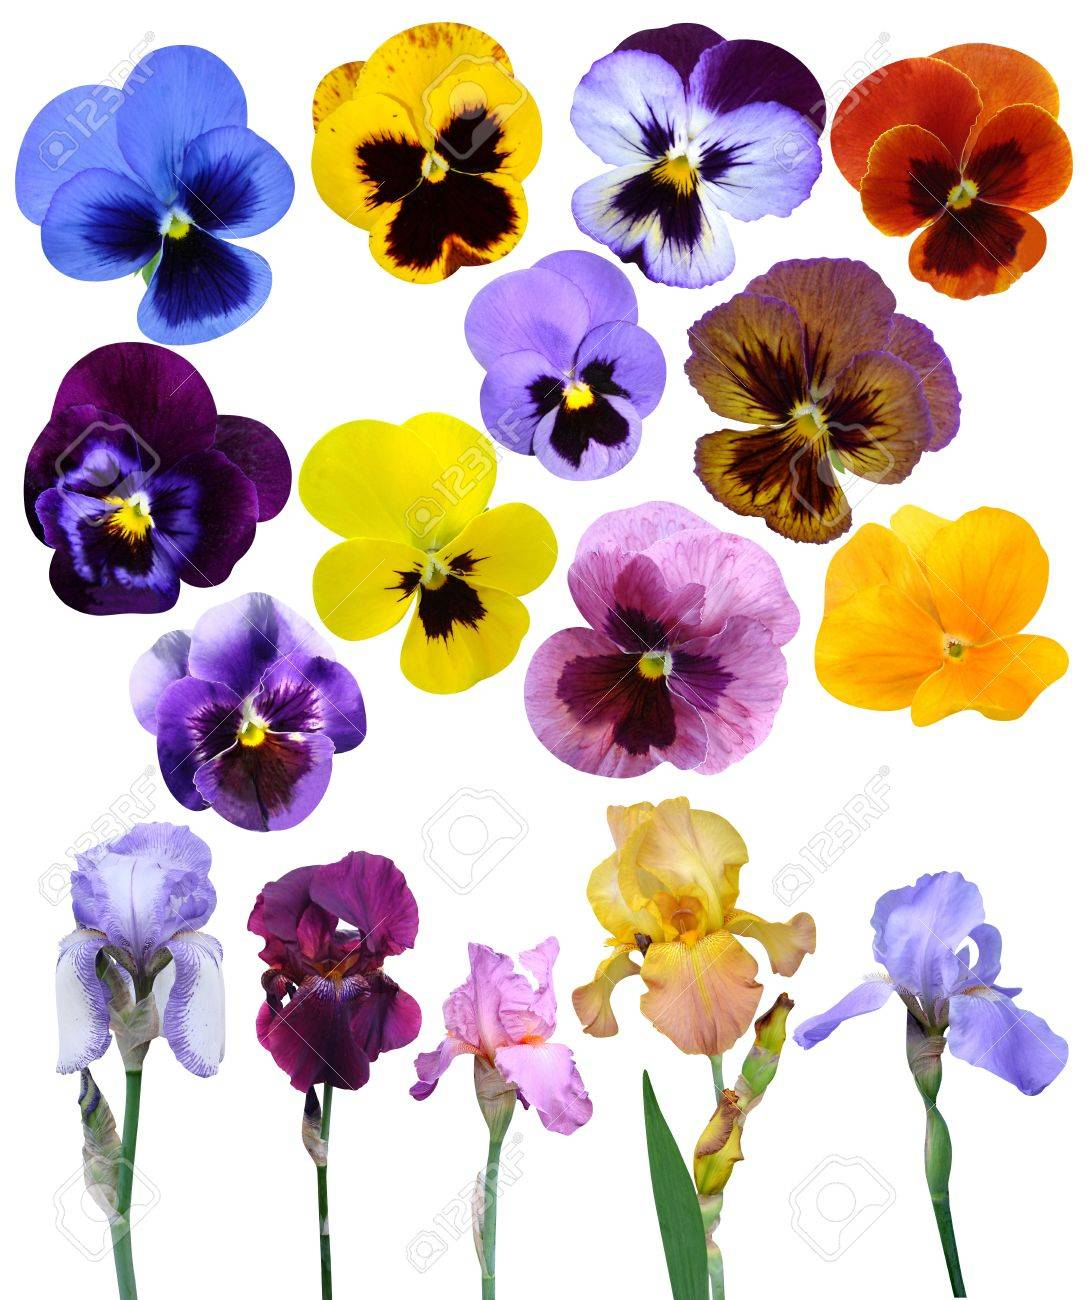 irises violet flowers it is isolated a holiday collection Stock Photo - 18632948